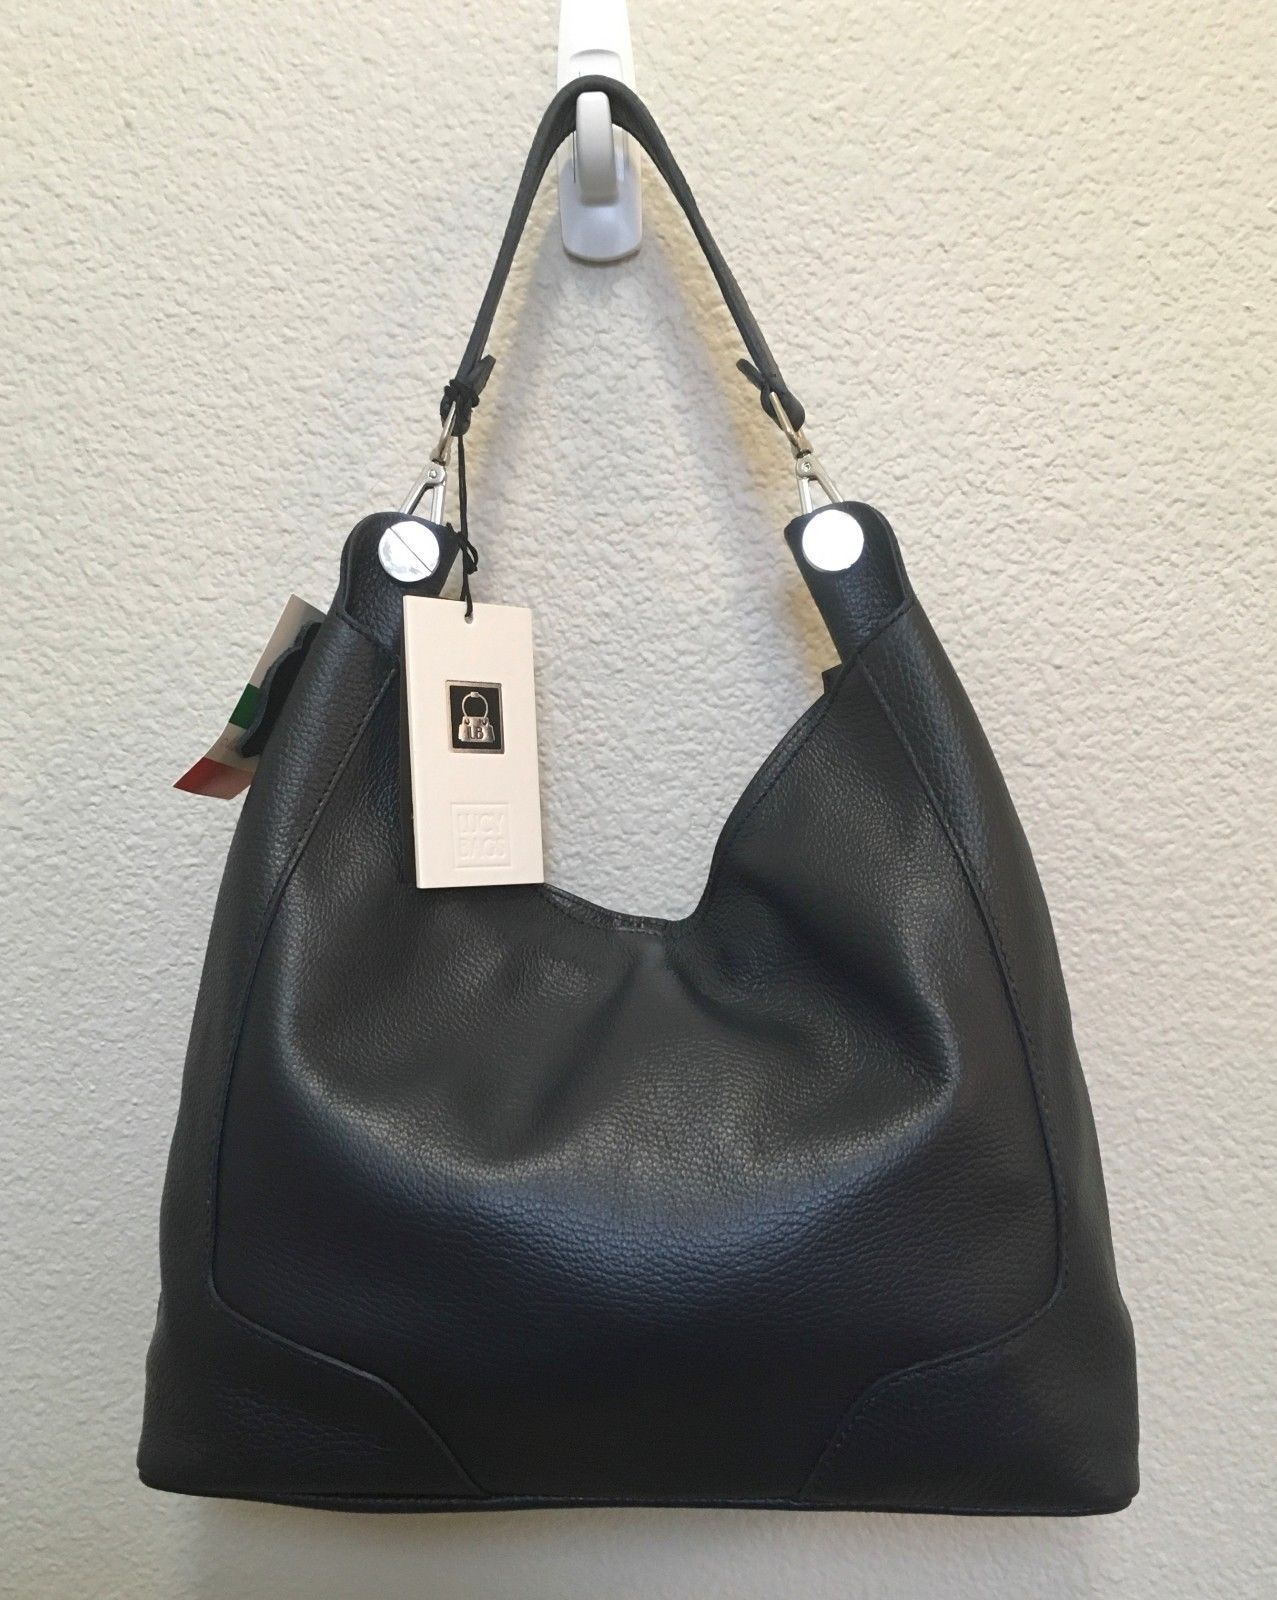 New Navy Blue Made in Italy Pebbled Leather Hobo Handbag Shoulder Bag Purse